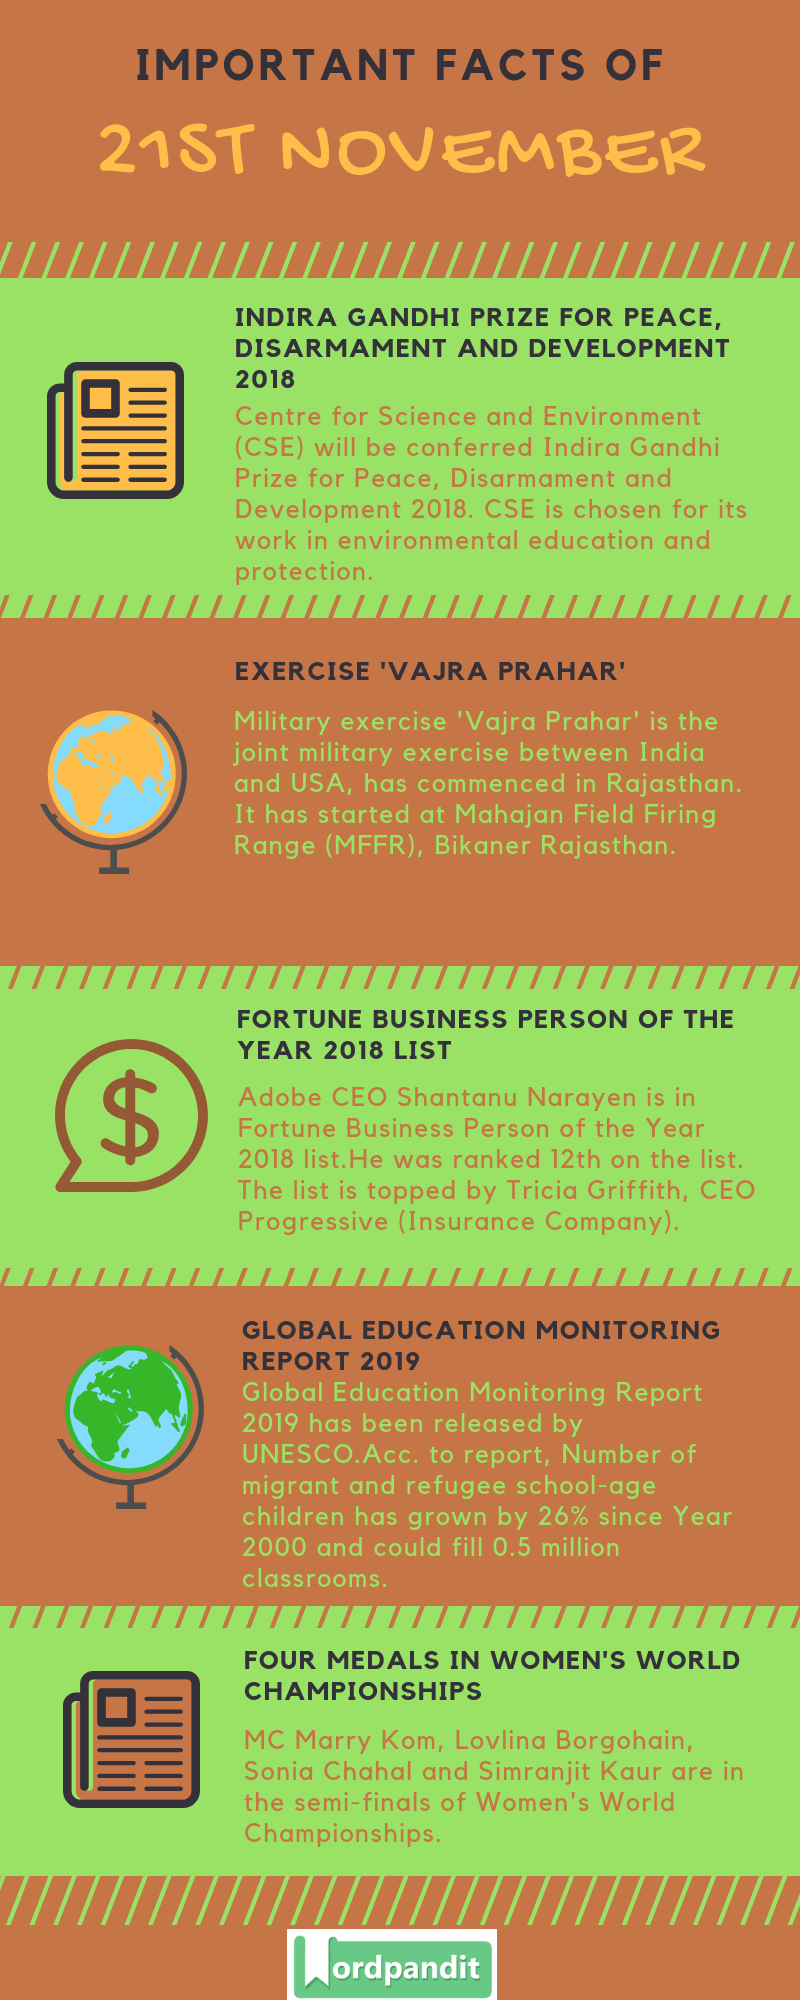 Daily Current Affairs 21 November 2018 Current Affairs Quiz 21 November 2018 Current Affairs Infographic